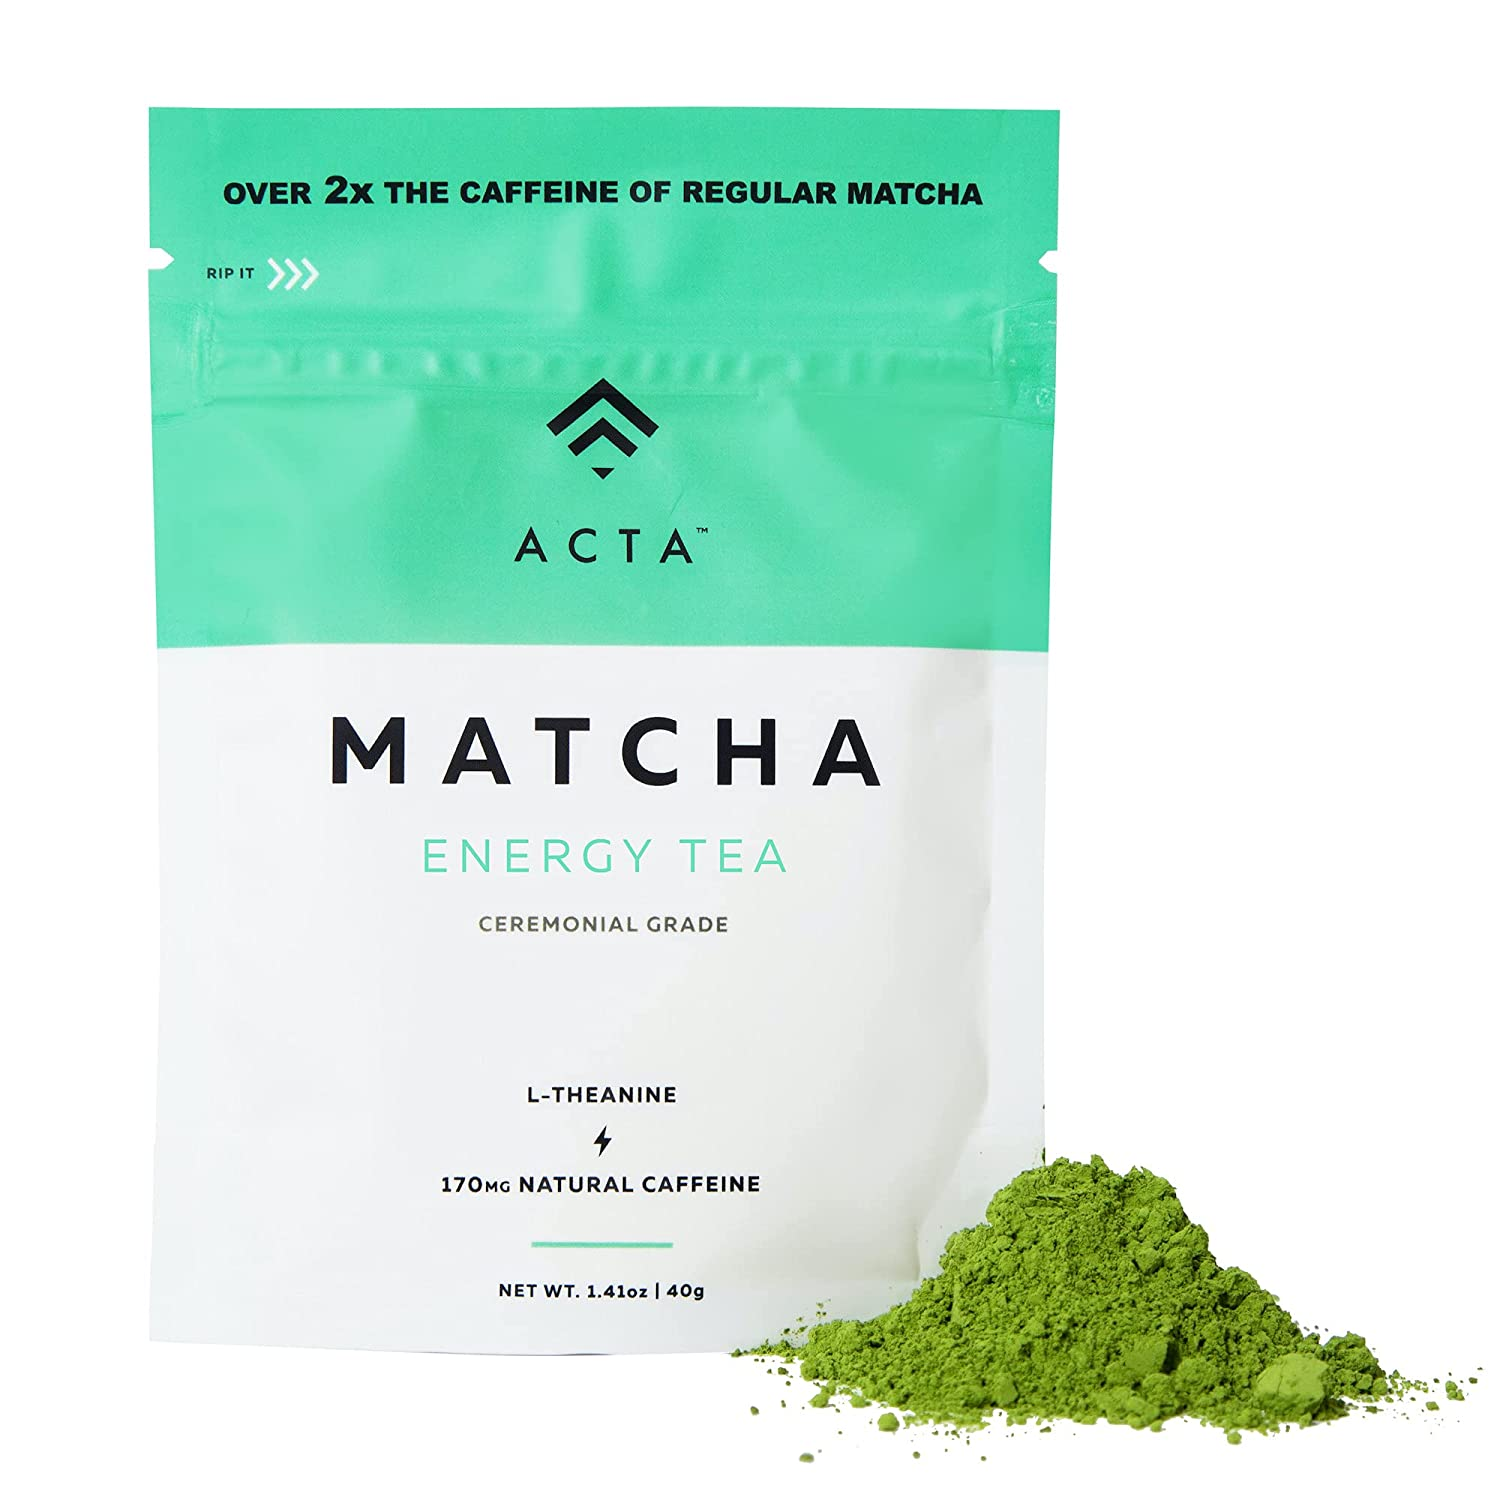 ACTA Matcha Energy Tea 40g, High Caffeine (170mg) Blend for Increased Focus & Clarity, Perfect Coffee Alternative Made with Ceremonial Grade Matcha Green Tea Powder from Japan